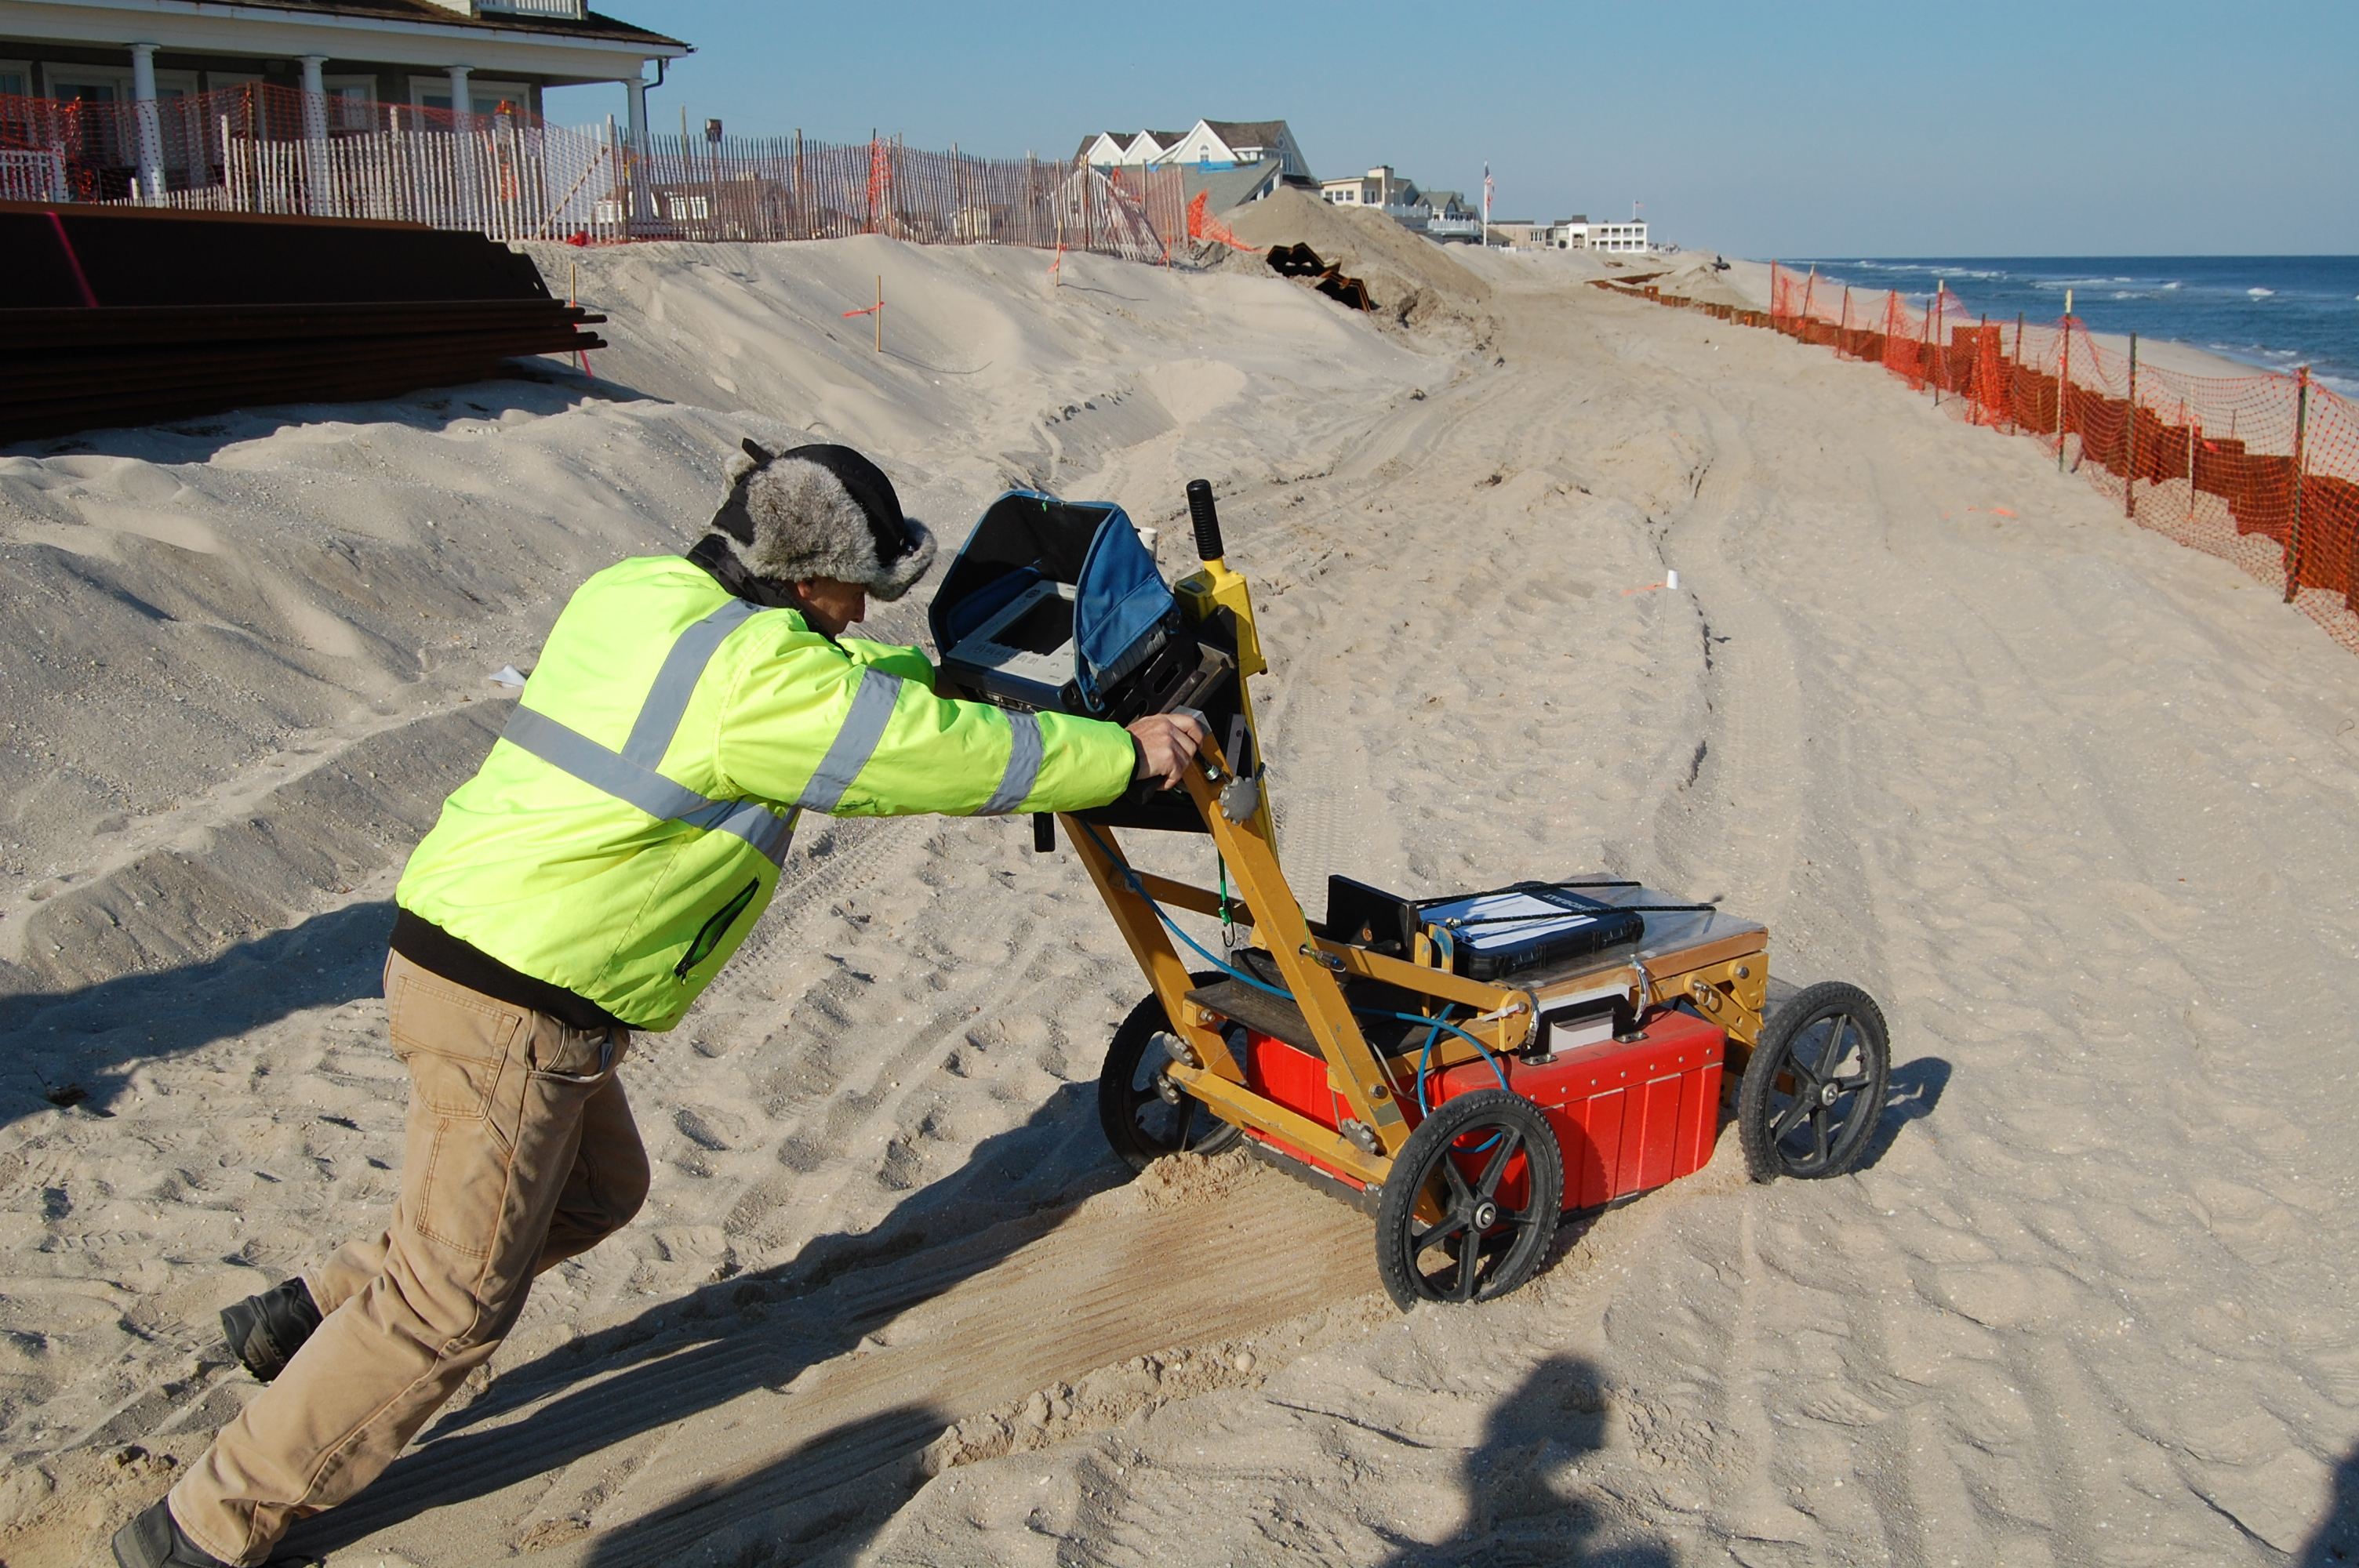 Ground-penetrating radar is used at the site of a shipwreck found in Brick, N.J. (Photo: Daniel Nee)